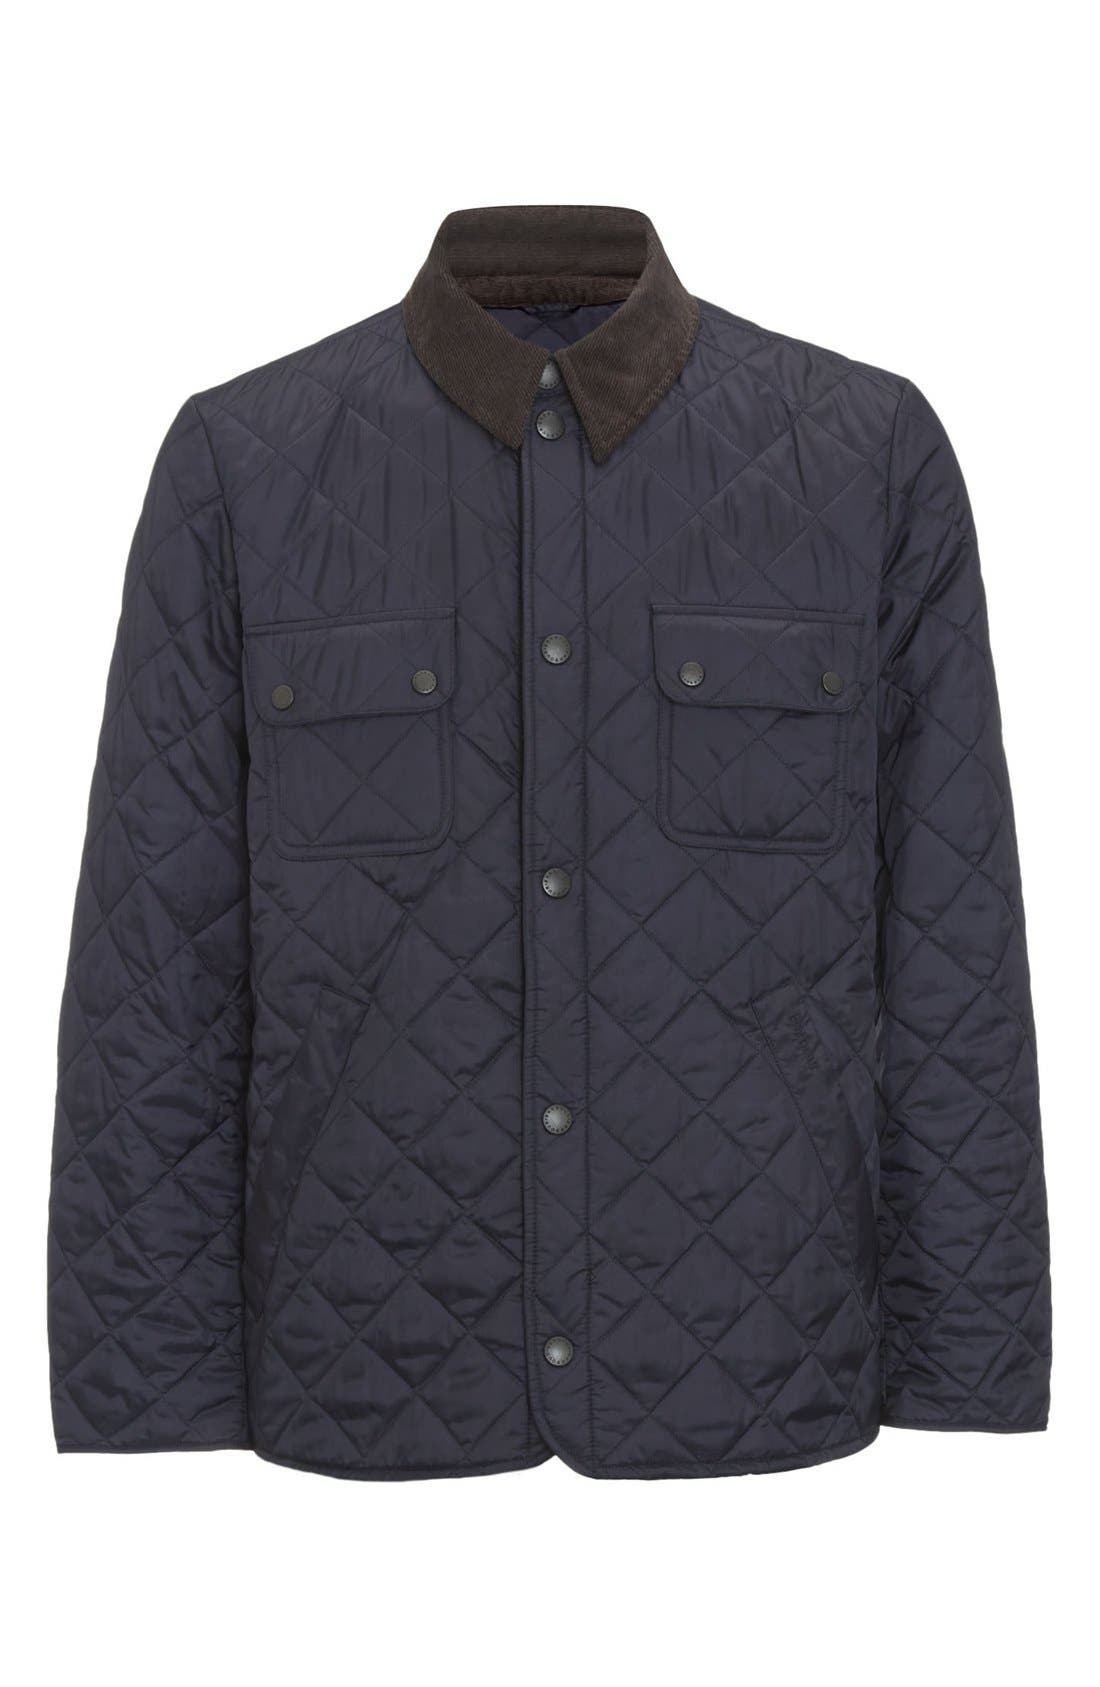 'Tinford' Regular Fit Quilted Jacket,                             Alternate thumbnail 9, color,                             Navy